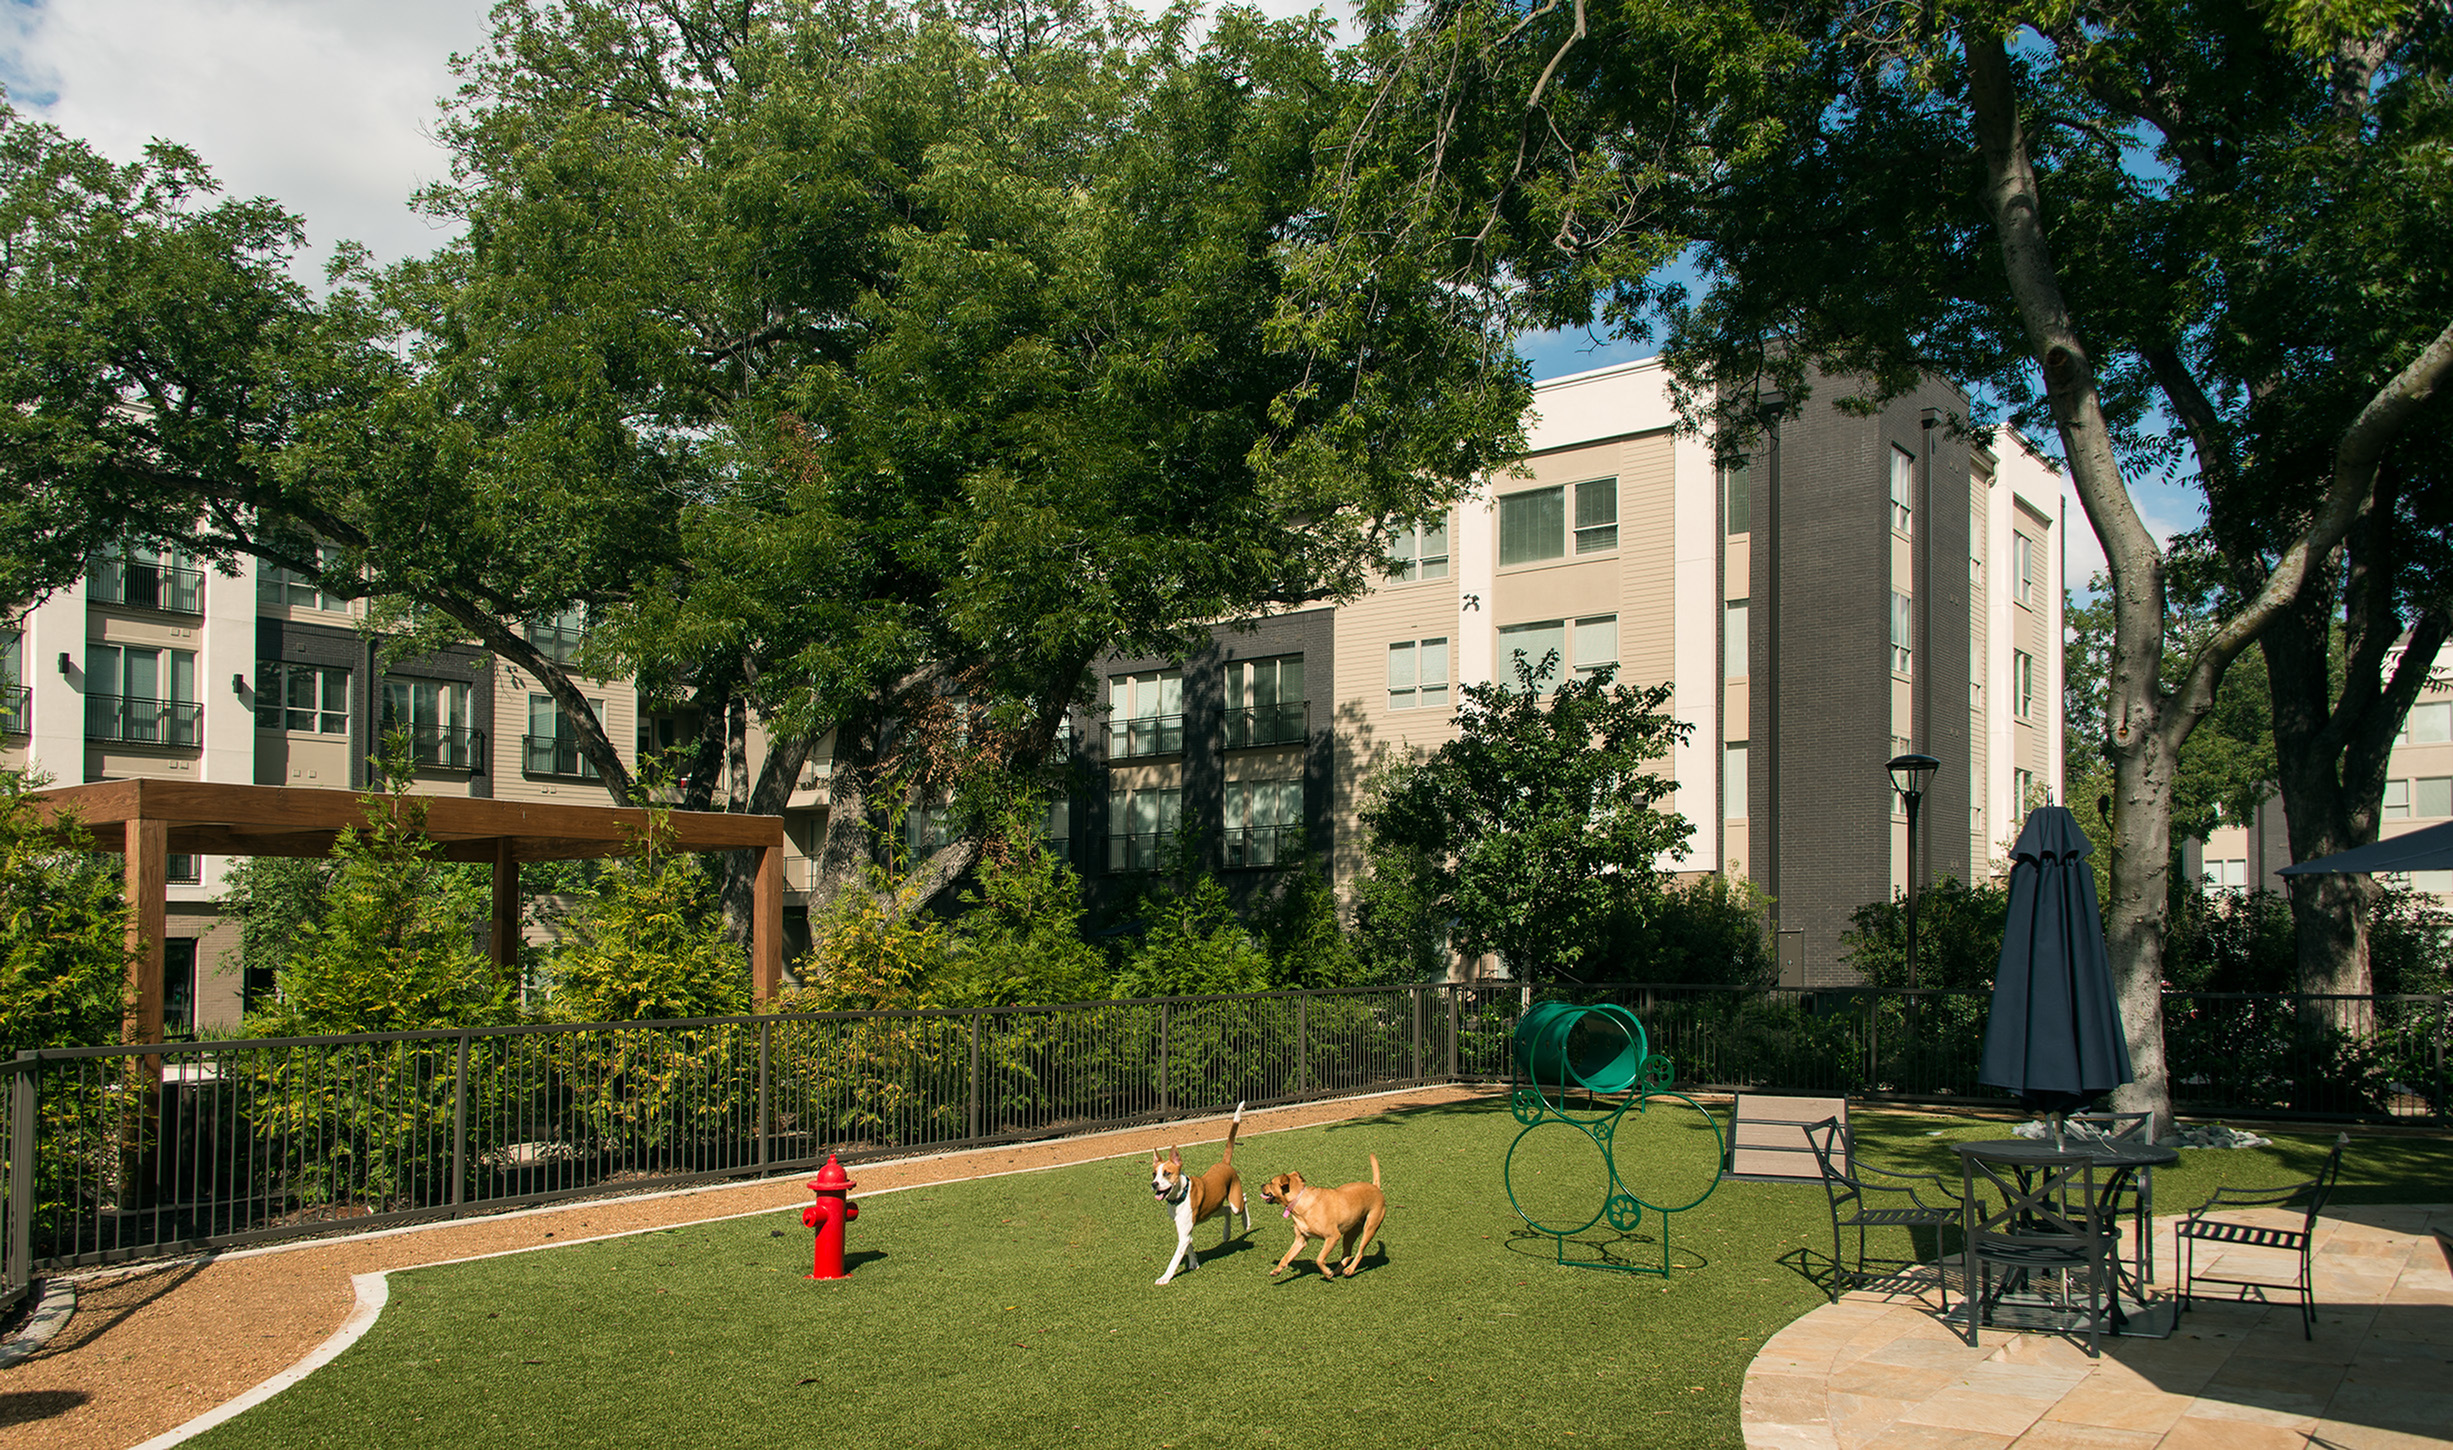 Image of Pet-friendly community with dog park and designated pet washing station for Hanover Midtown Park